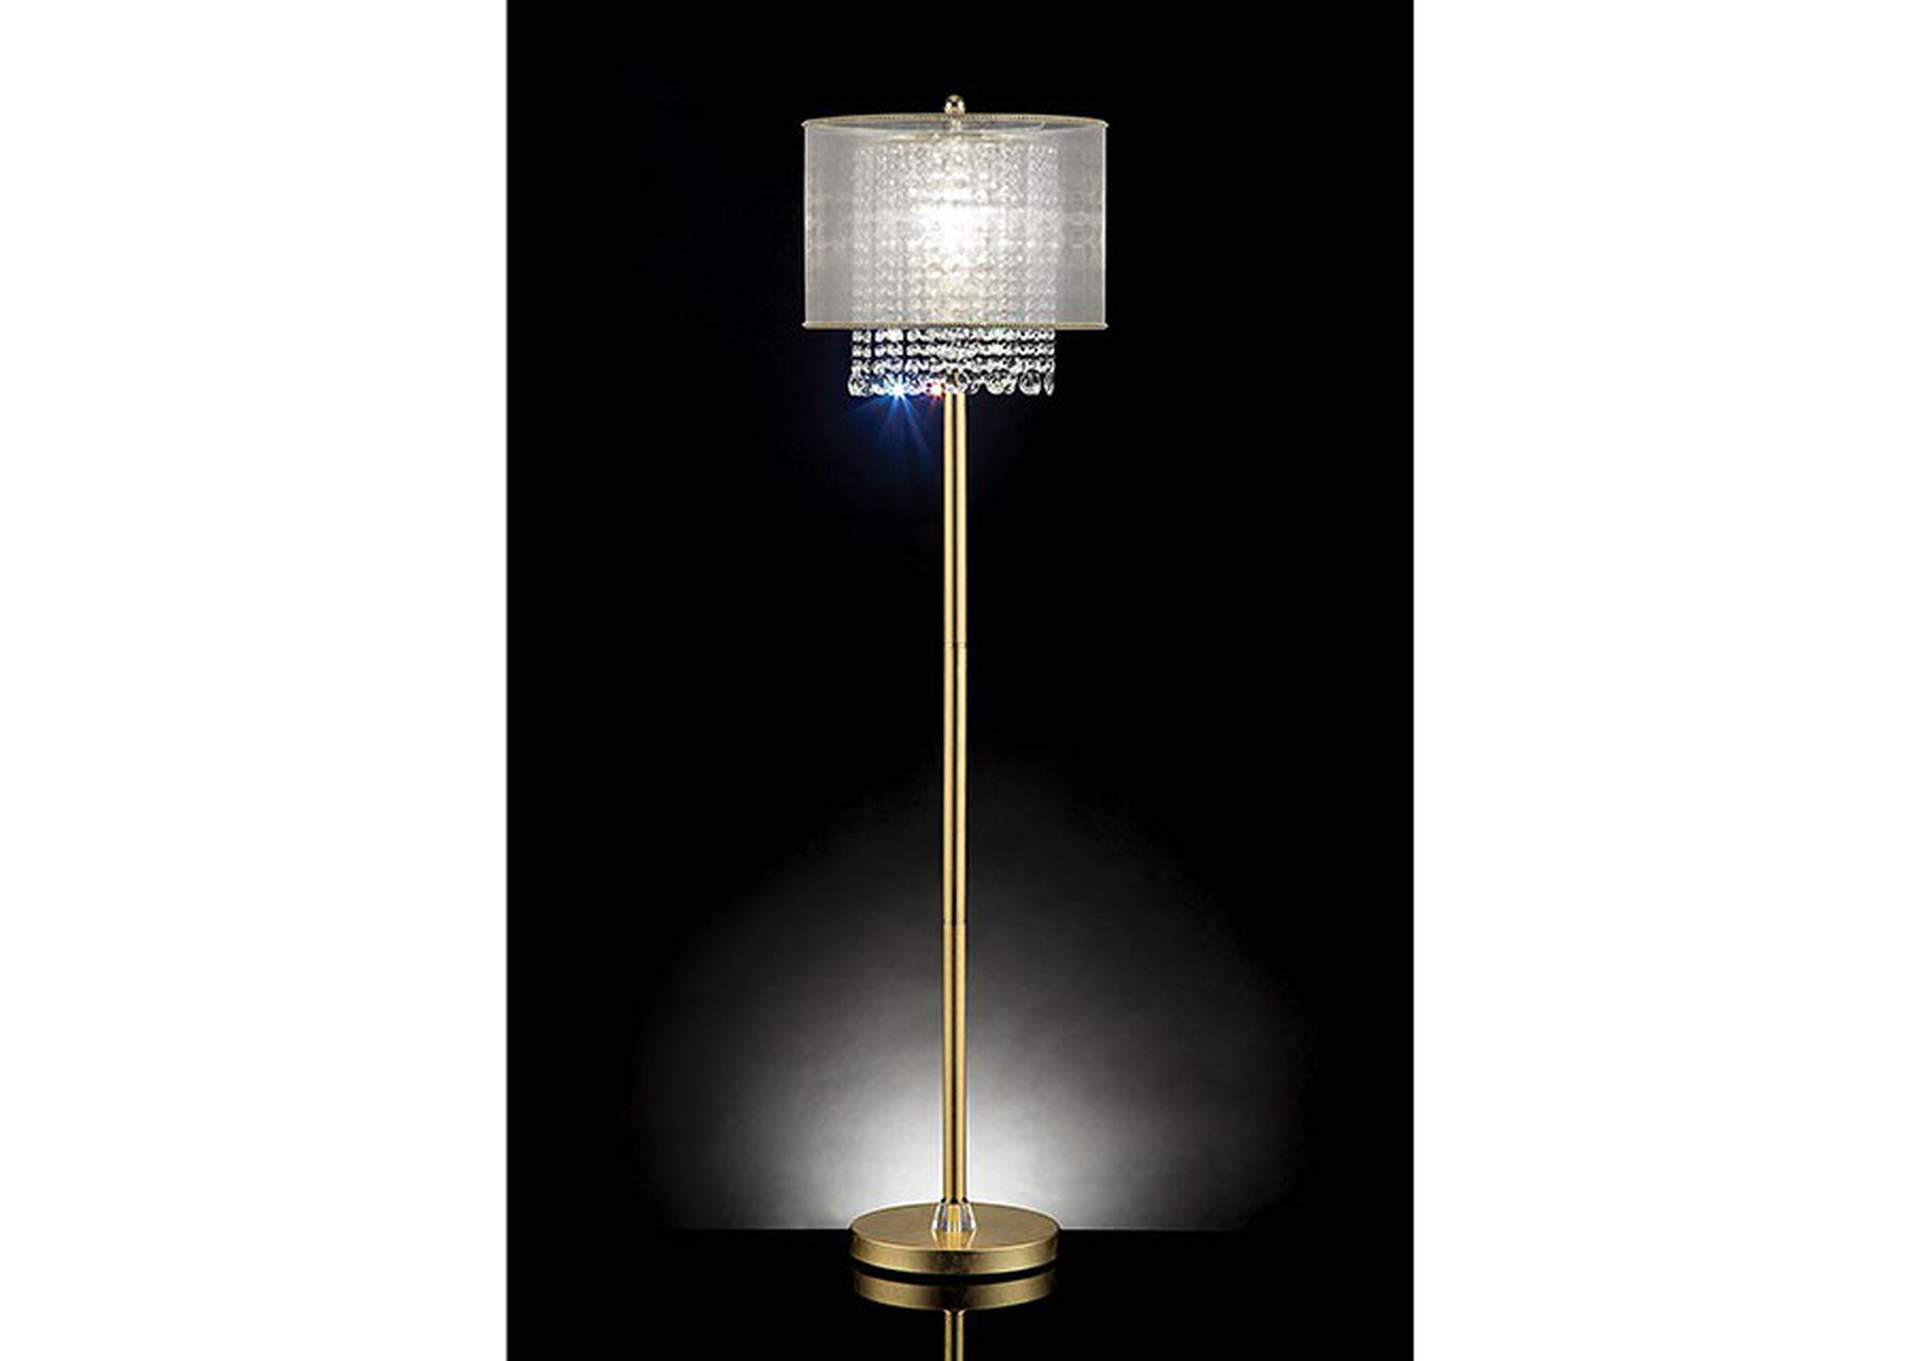 Ana Floor Lamp,Furniture of America